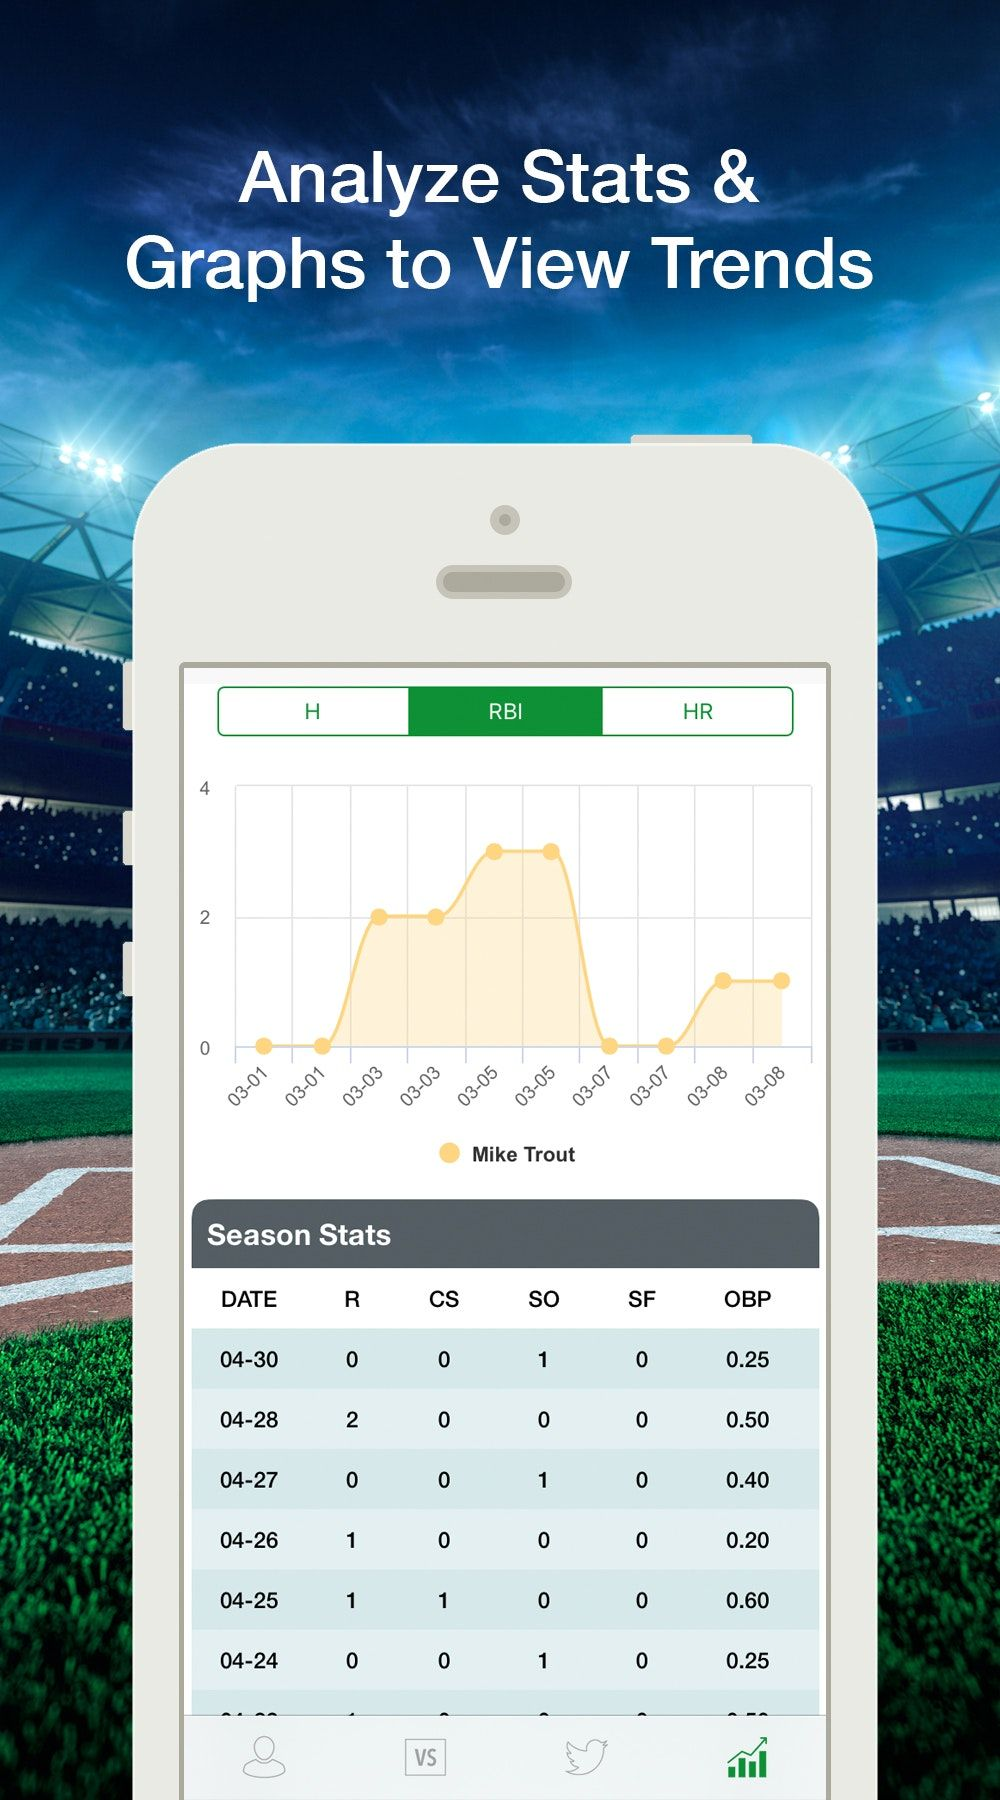 Hot New Product On Product Hunt Fanalyze App Analyze Compare Mlb Or Nfl Player Data With Search Android Iphone Sports T Nfl Players Daily Fantasy Sports Mlb